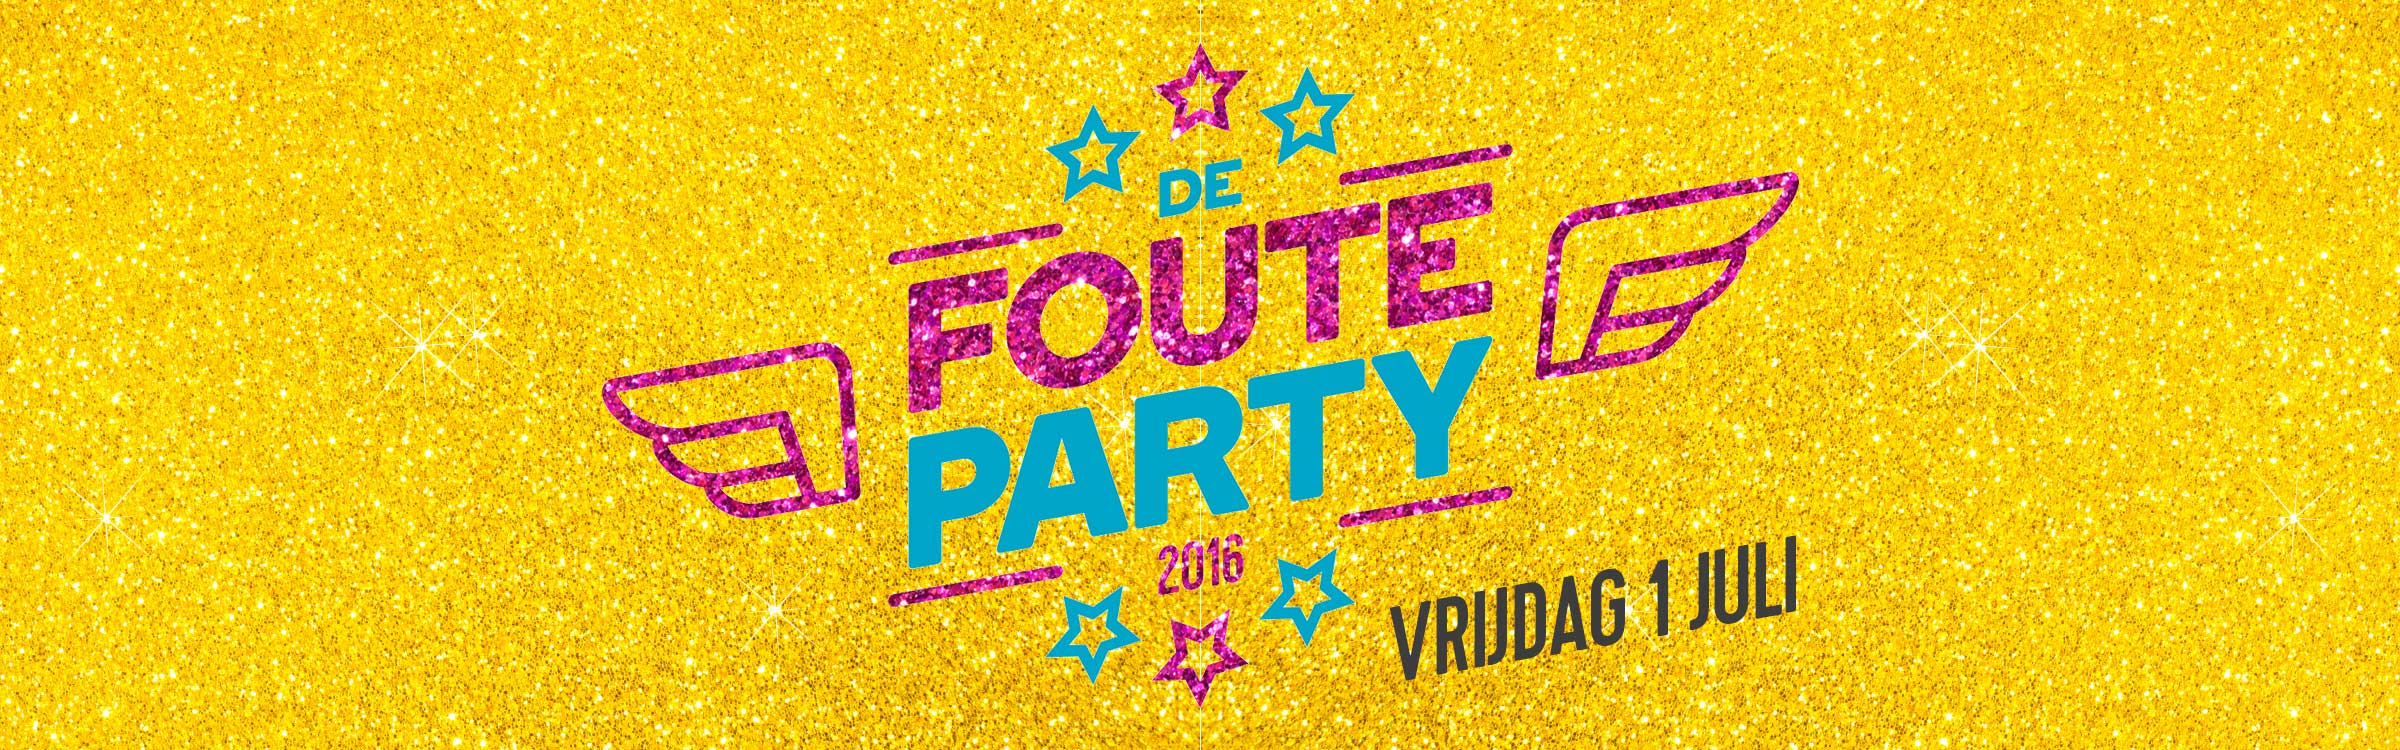 2400x750 q tickets fouteparty